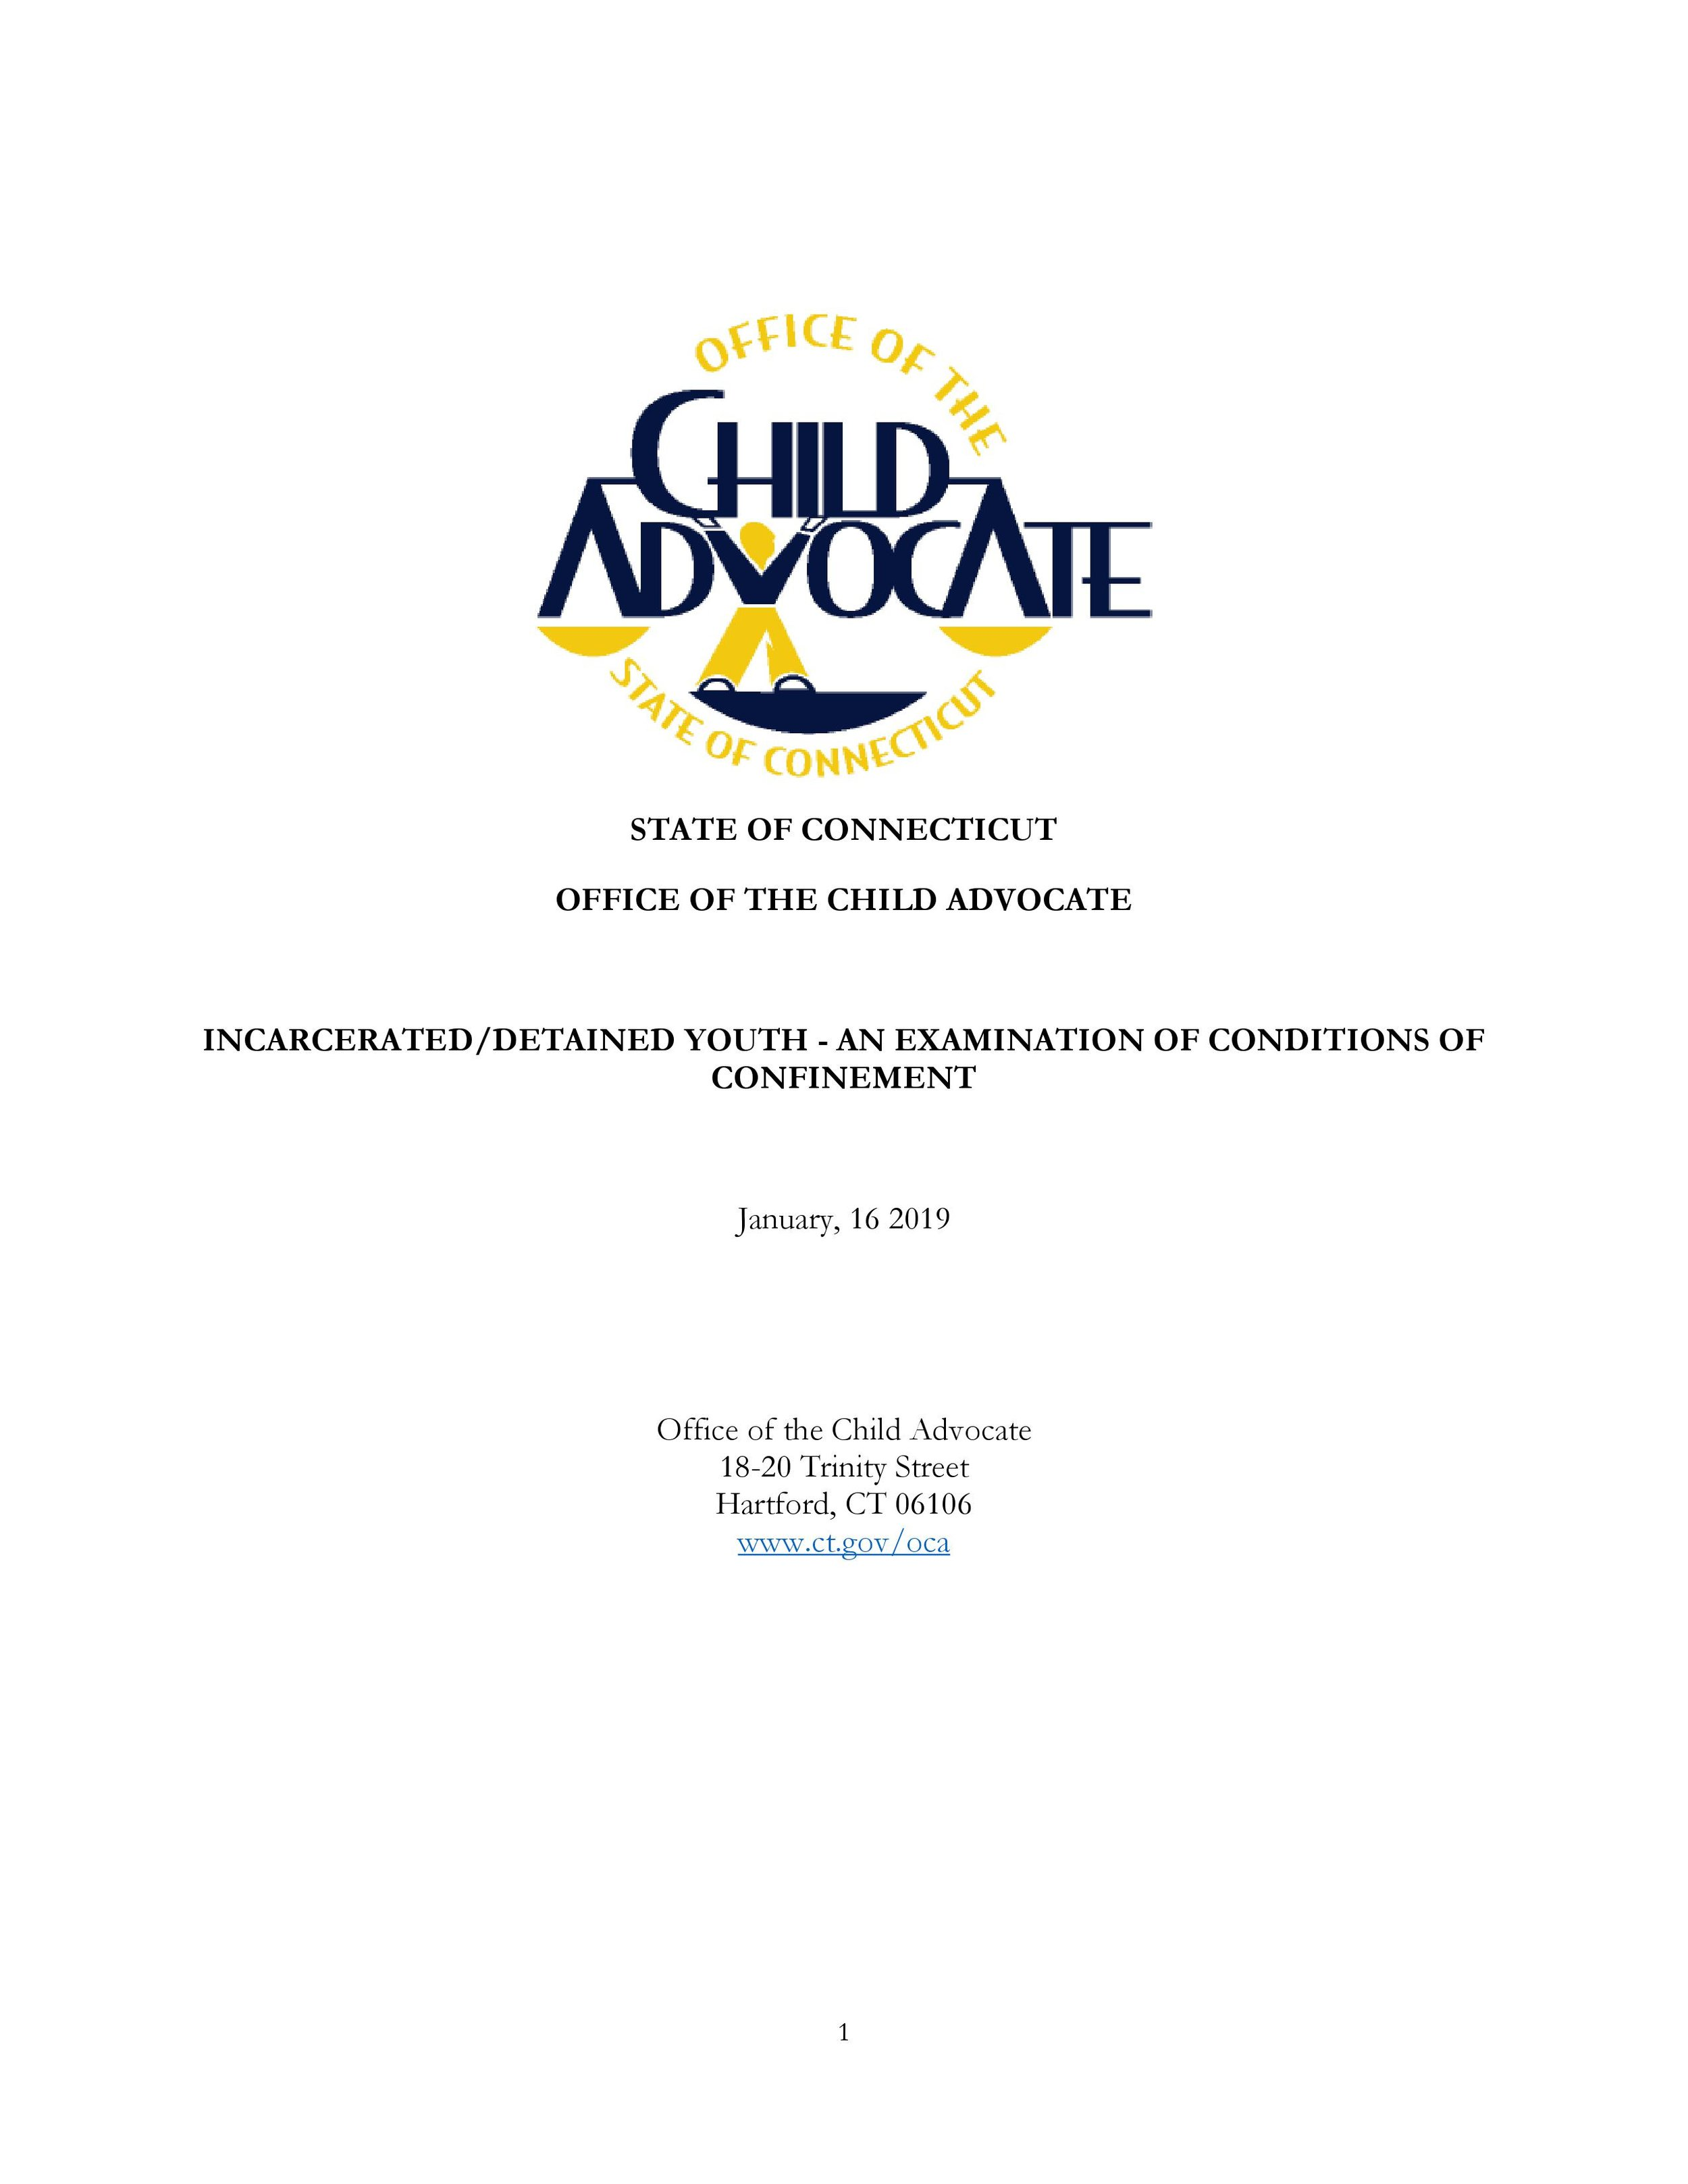 Click on the image above to access the report compiled by the Office of the Child Advocate.